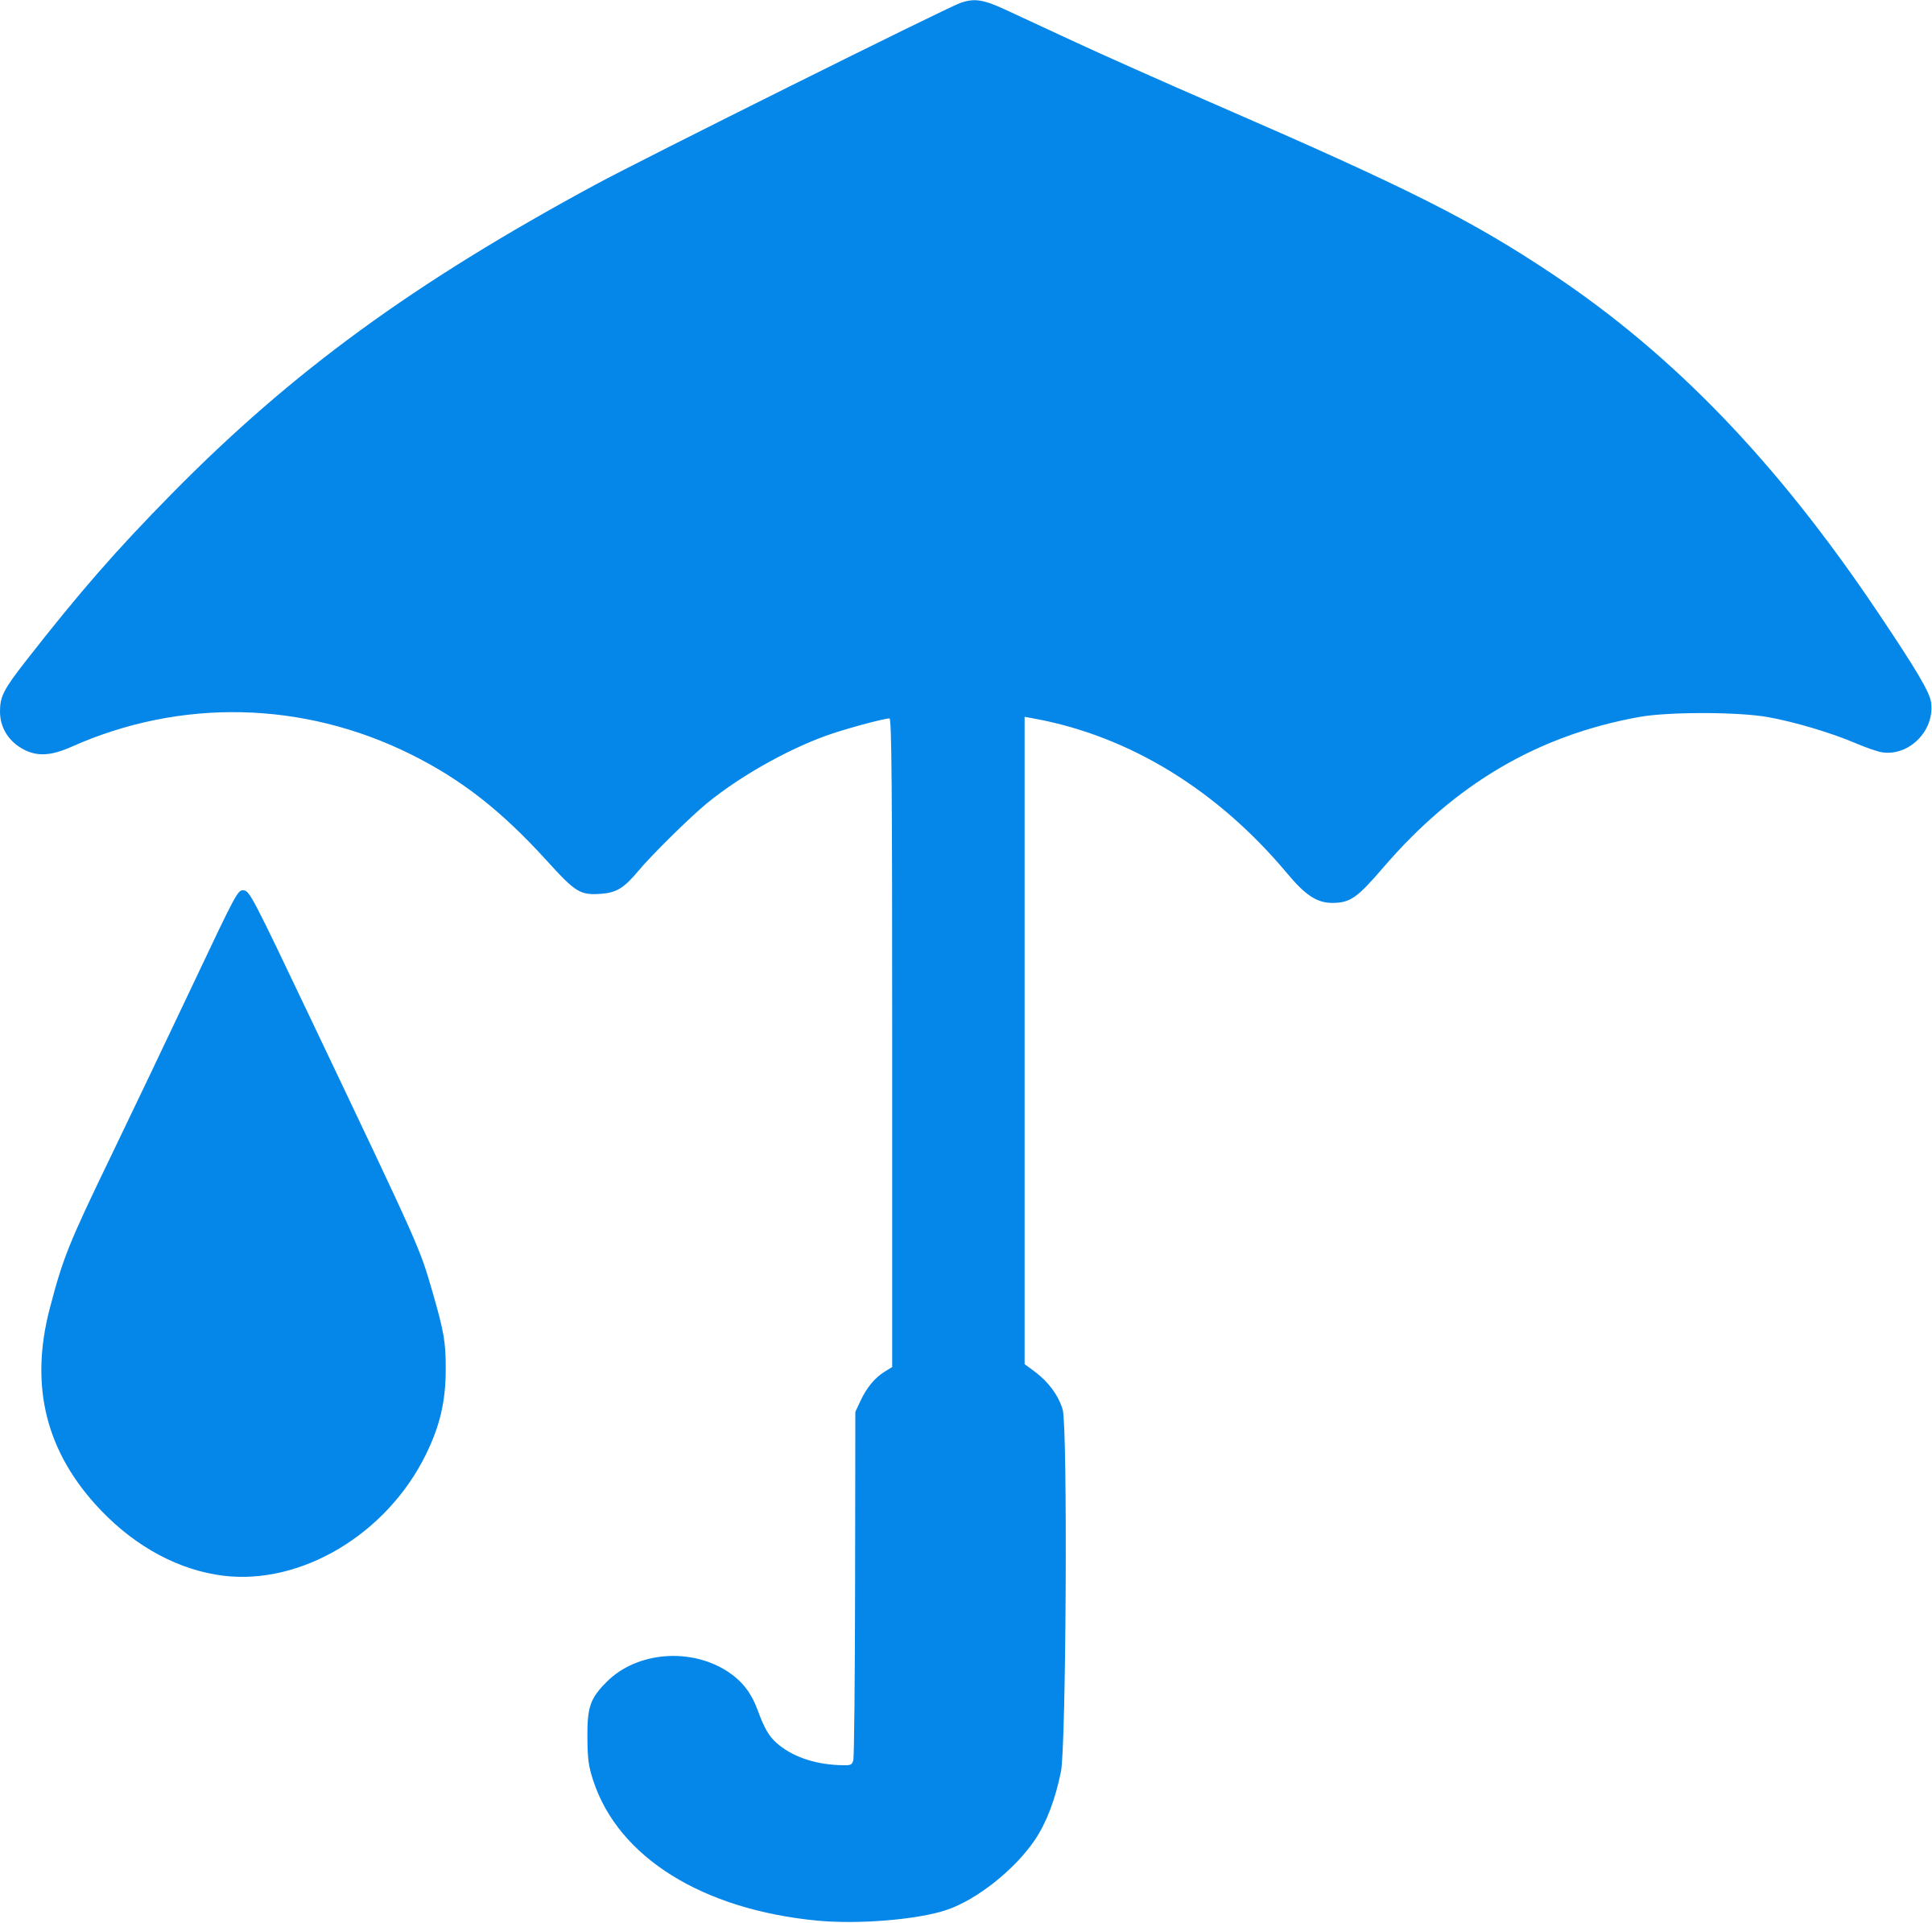 Raindrop clipart real. Cute free images image